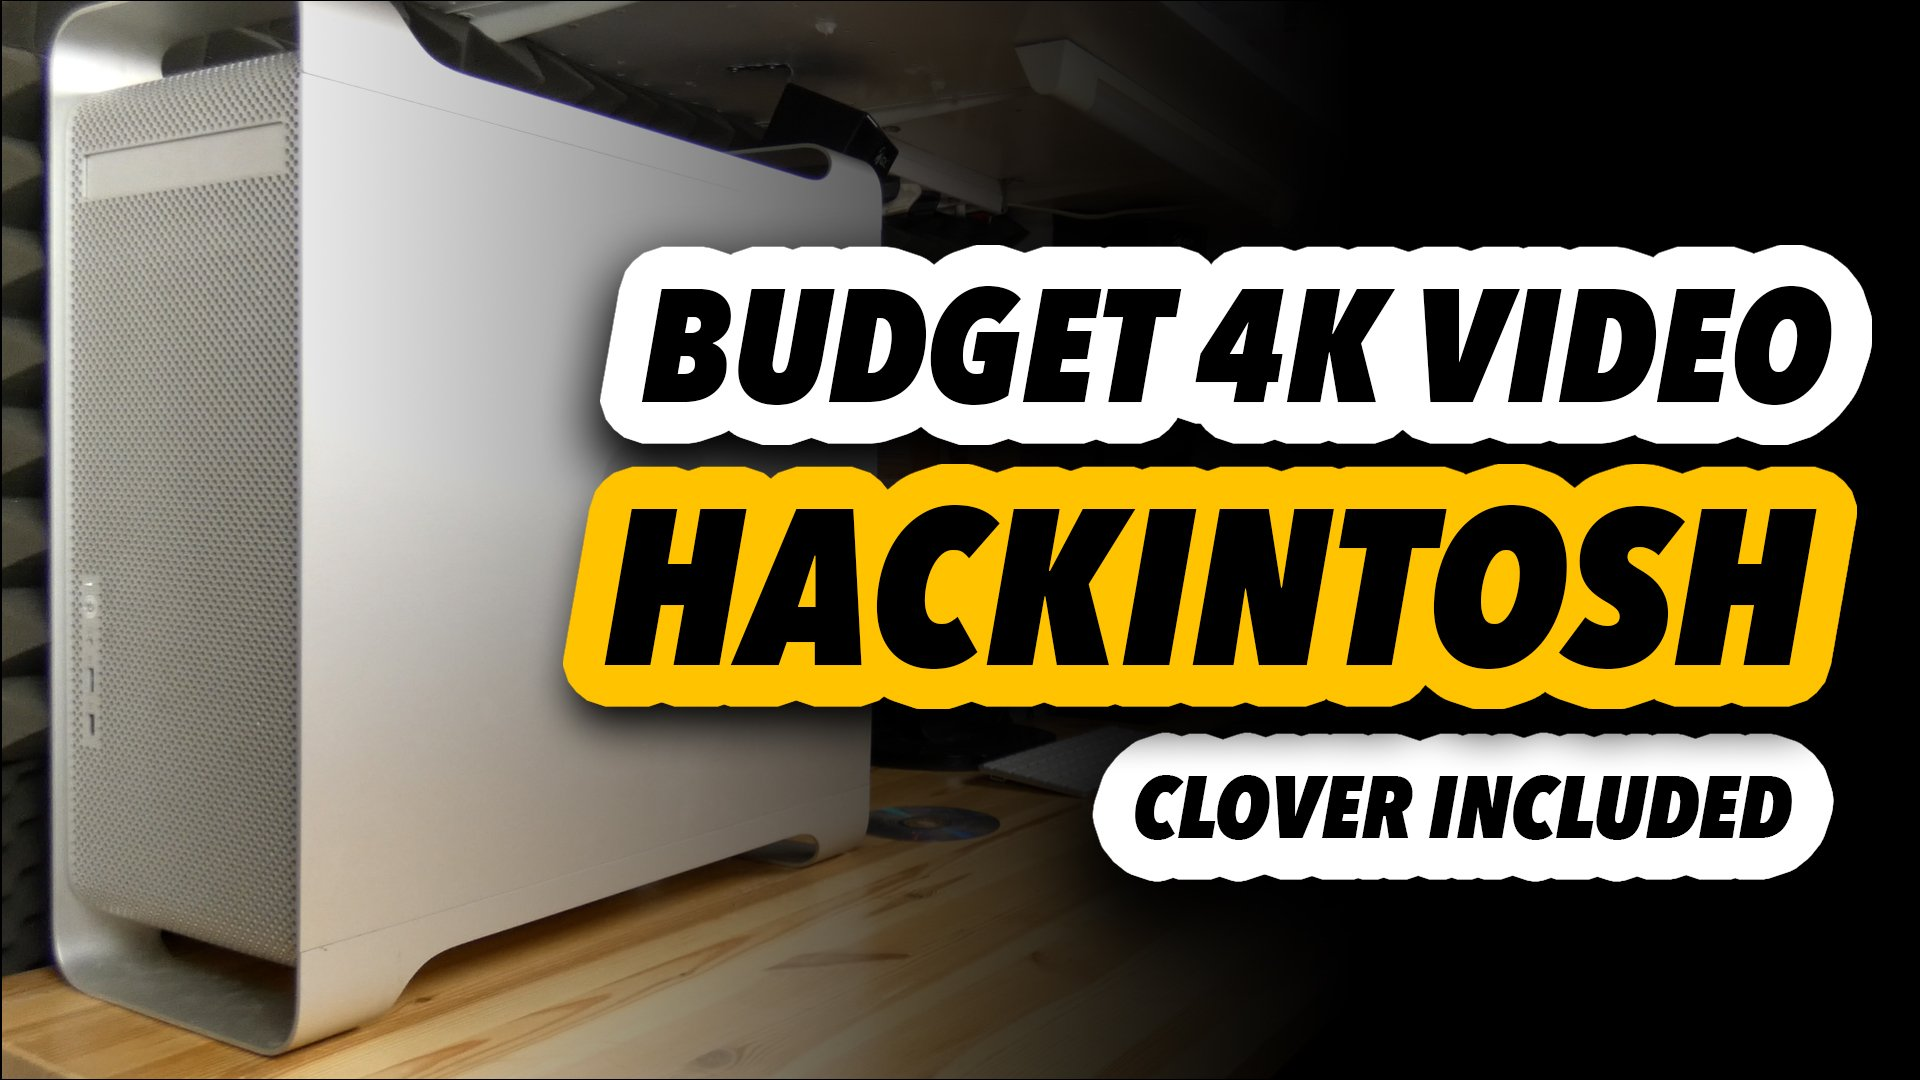 Budget 4K Video Editing Hackintosh - Clover Included - MORGONAUT